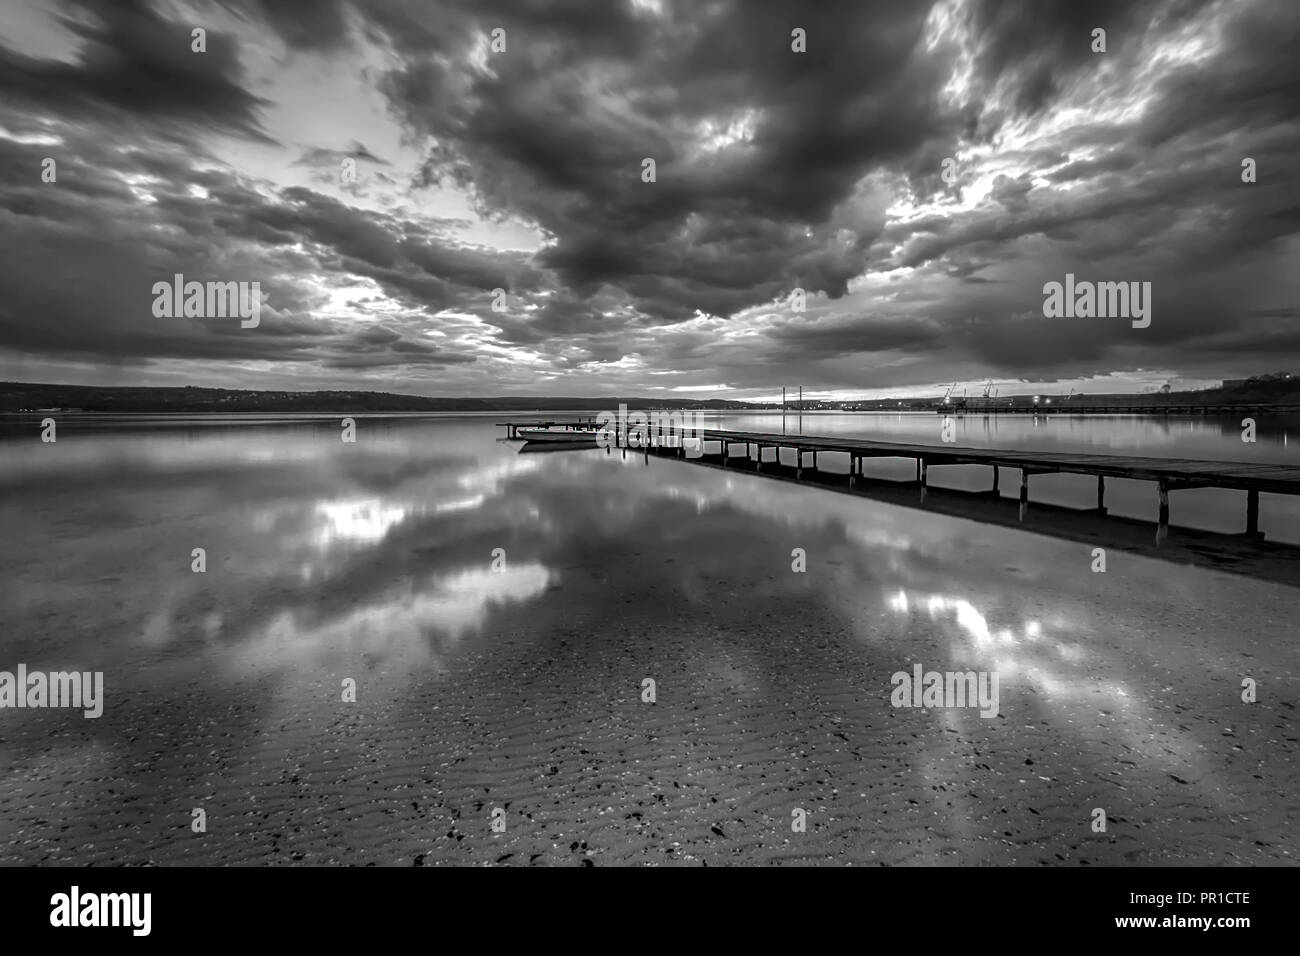 Stunning black and white long exposure seascape with clouds reflection